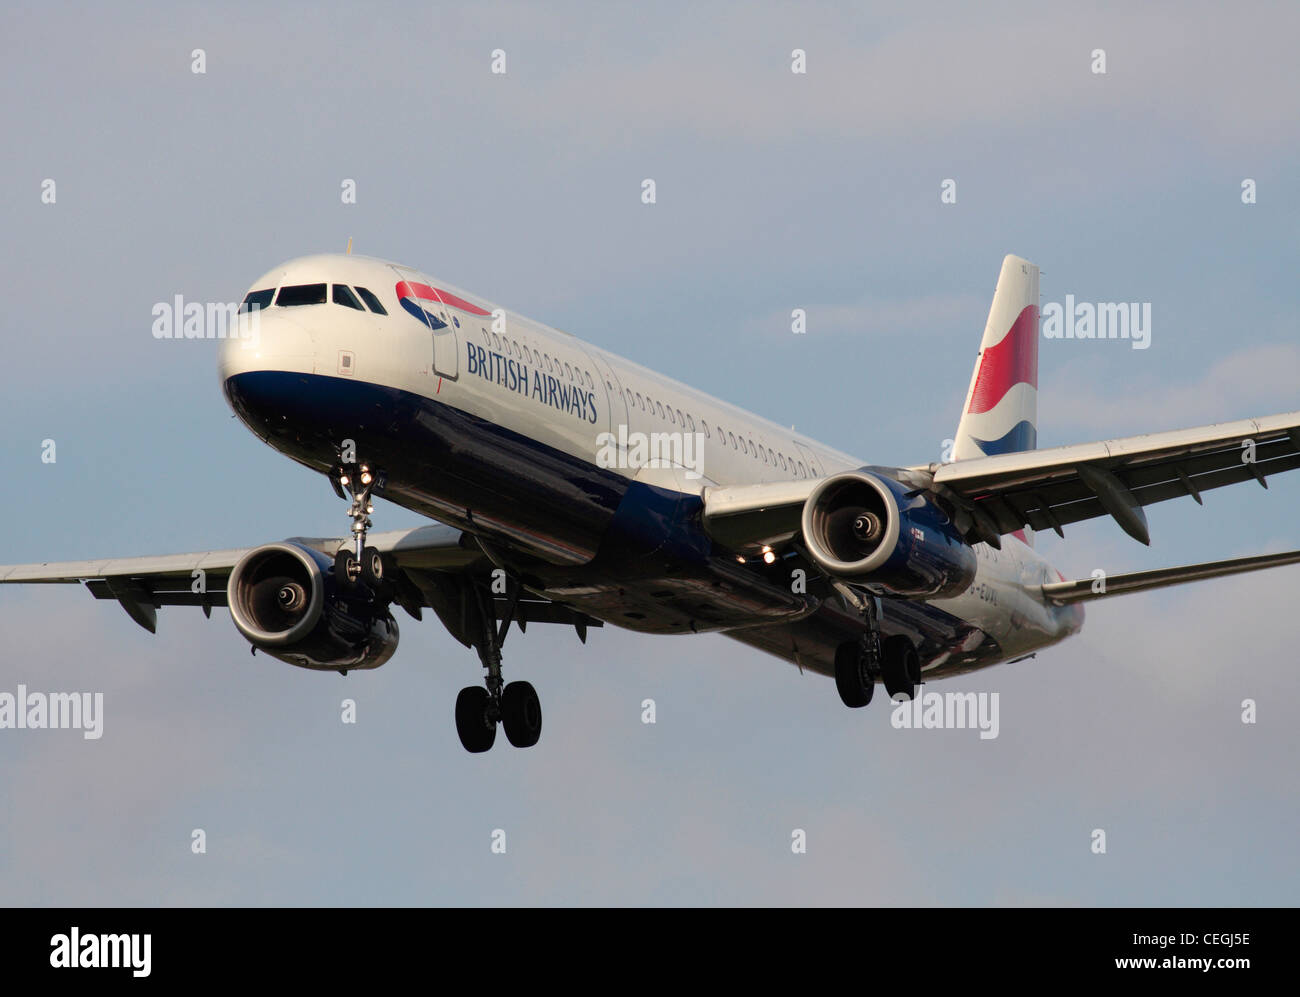 British Airways Airbus A321 passenger jet plane on approach. Close-up front view. - Stock Image